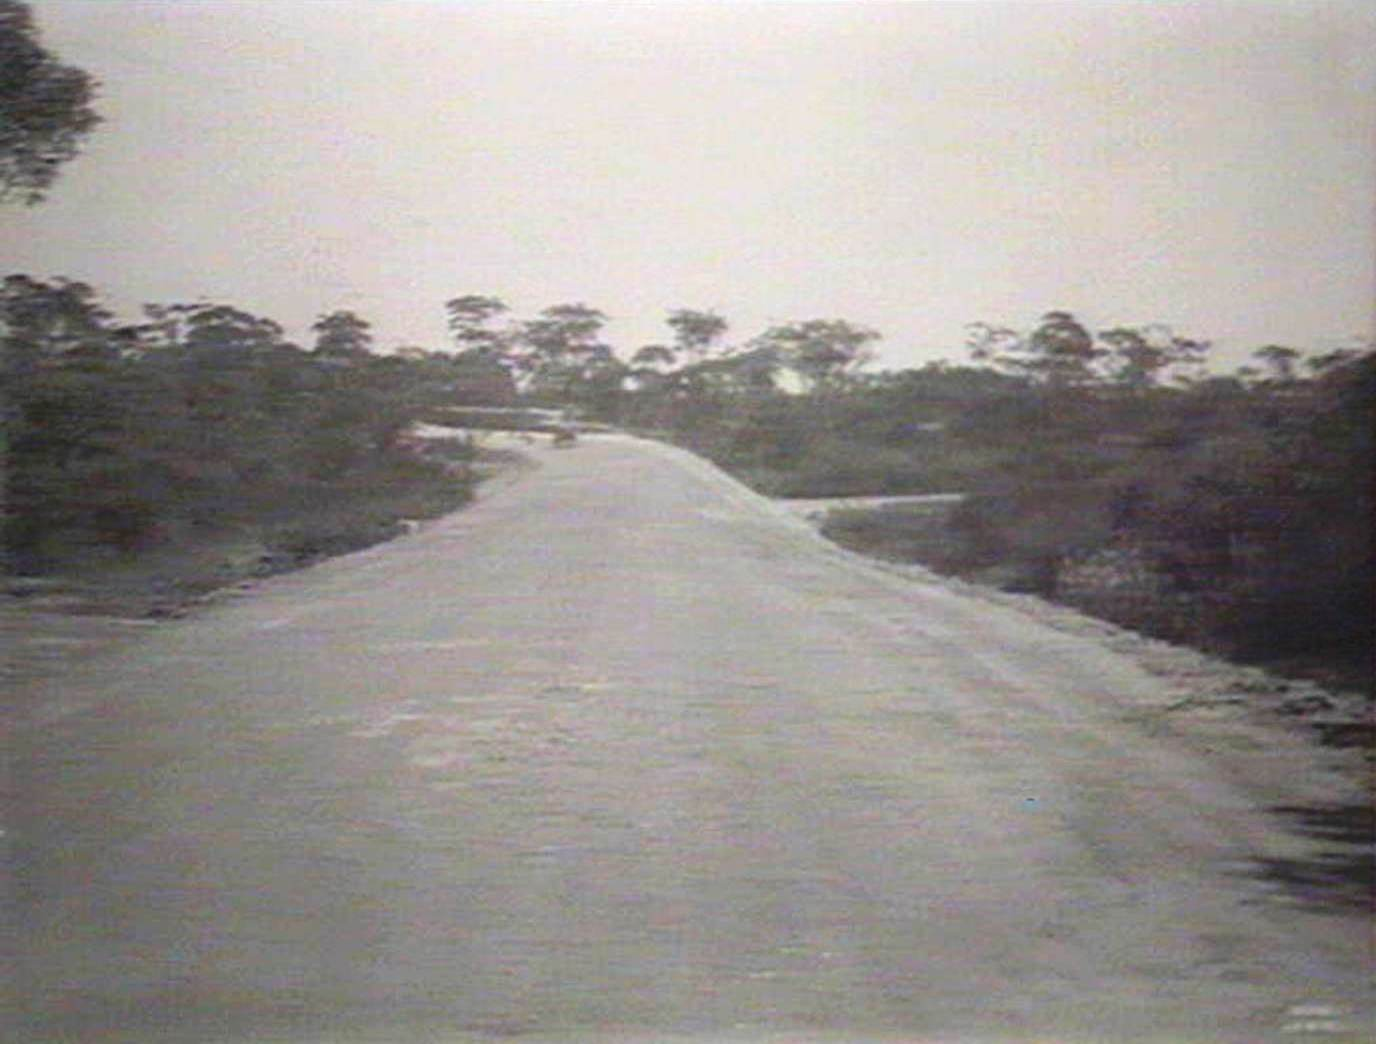 pittwater rd after construction looking towards pacific highway august 1935 image no d1 21454h courtesy state library of nsw [ 1376 x 1044 Pixel ]